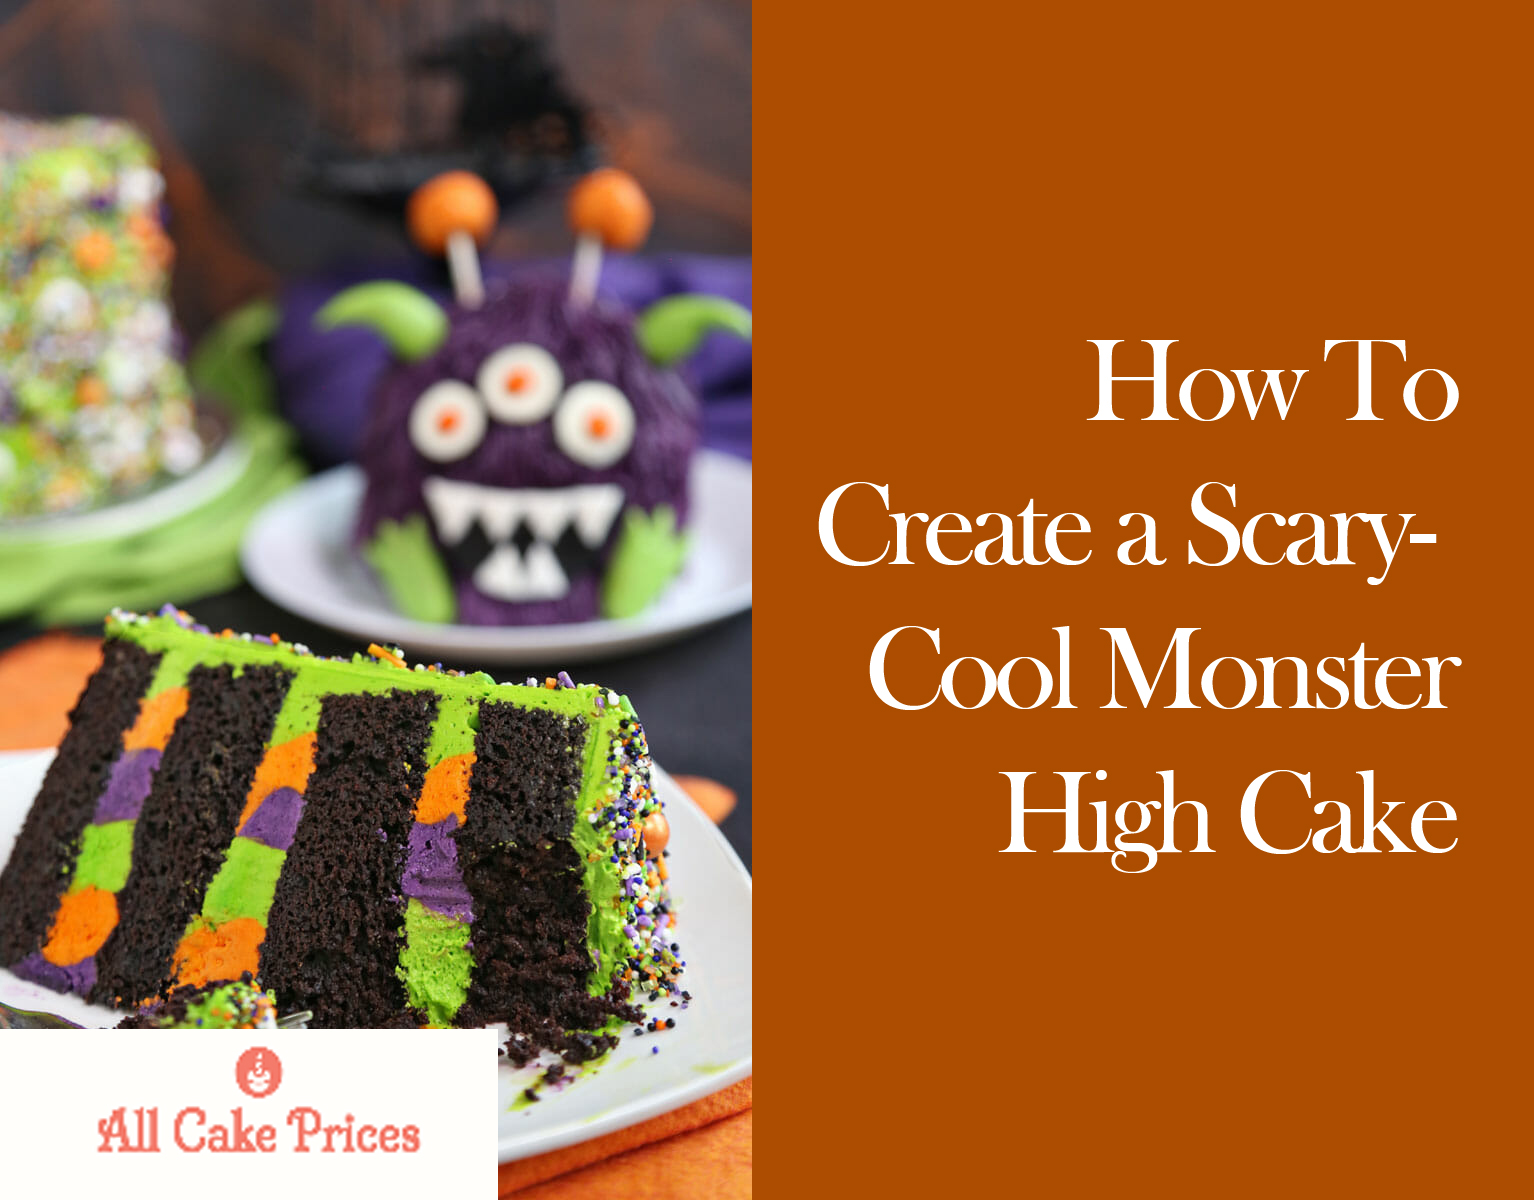 How To Create a Scary-Cool Monster High Cake